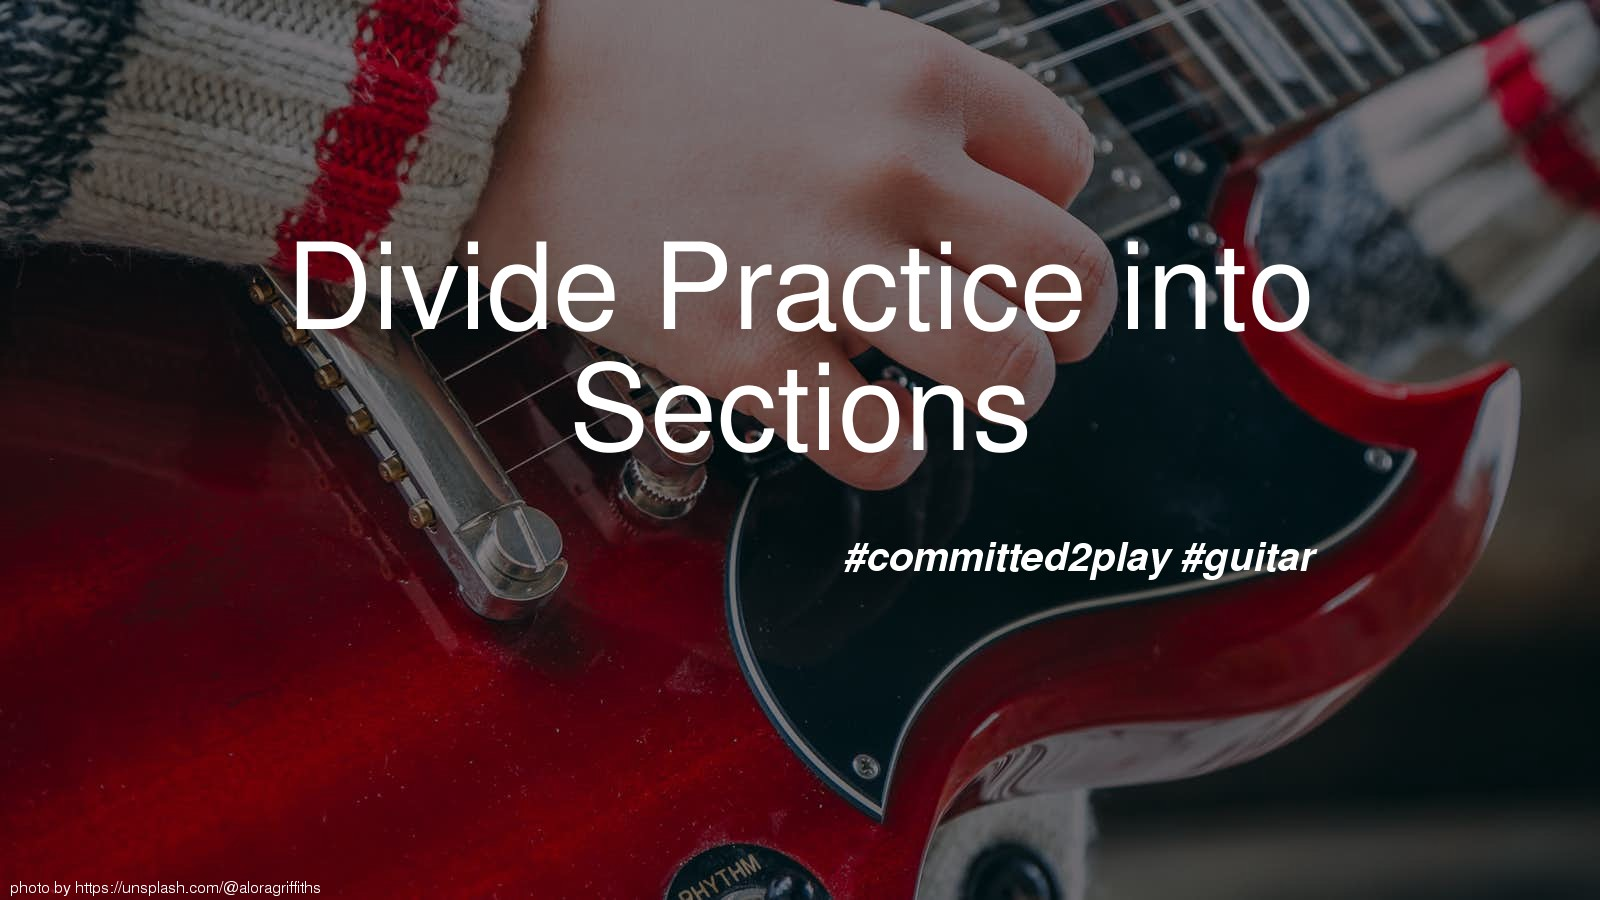 Divide Practice into Sections